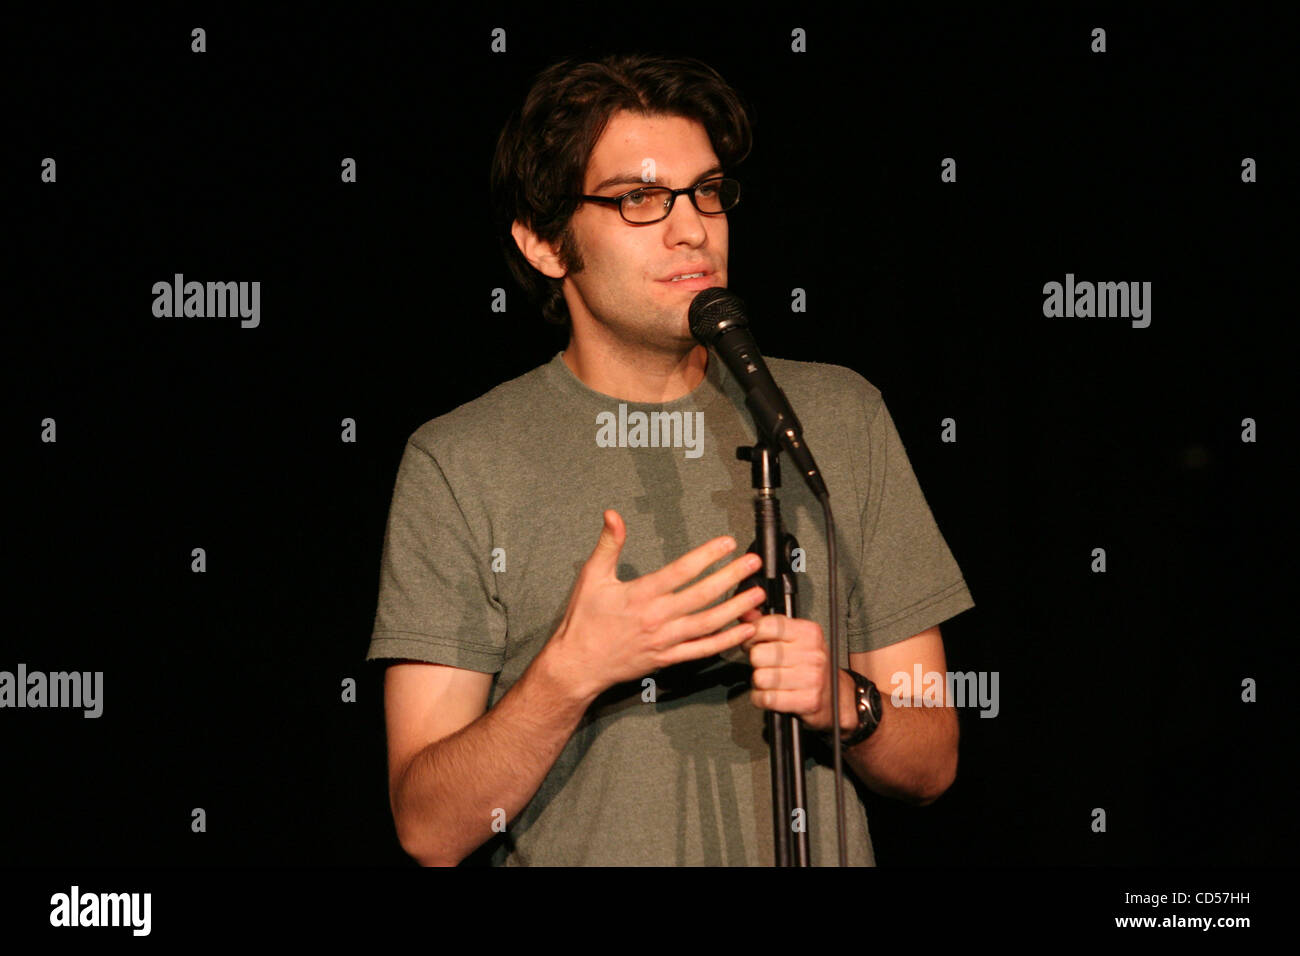 Dan Mintz made an appearance at the 'Hold for the Laughs' show at the Sage Theater in Manhattan Wed. 19, - Stock Image